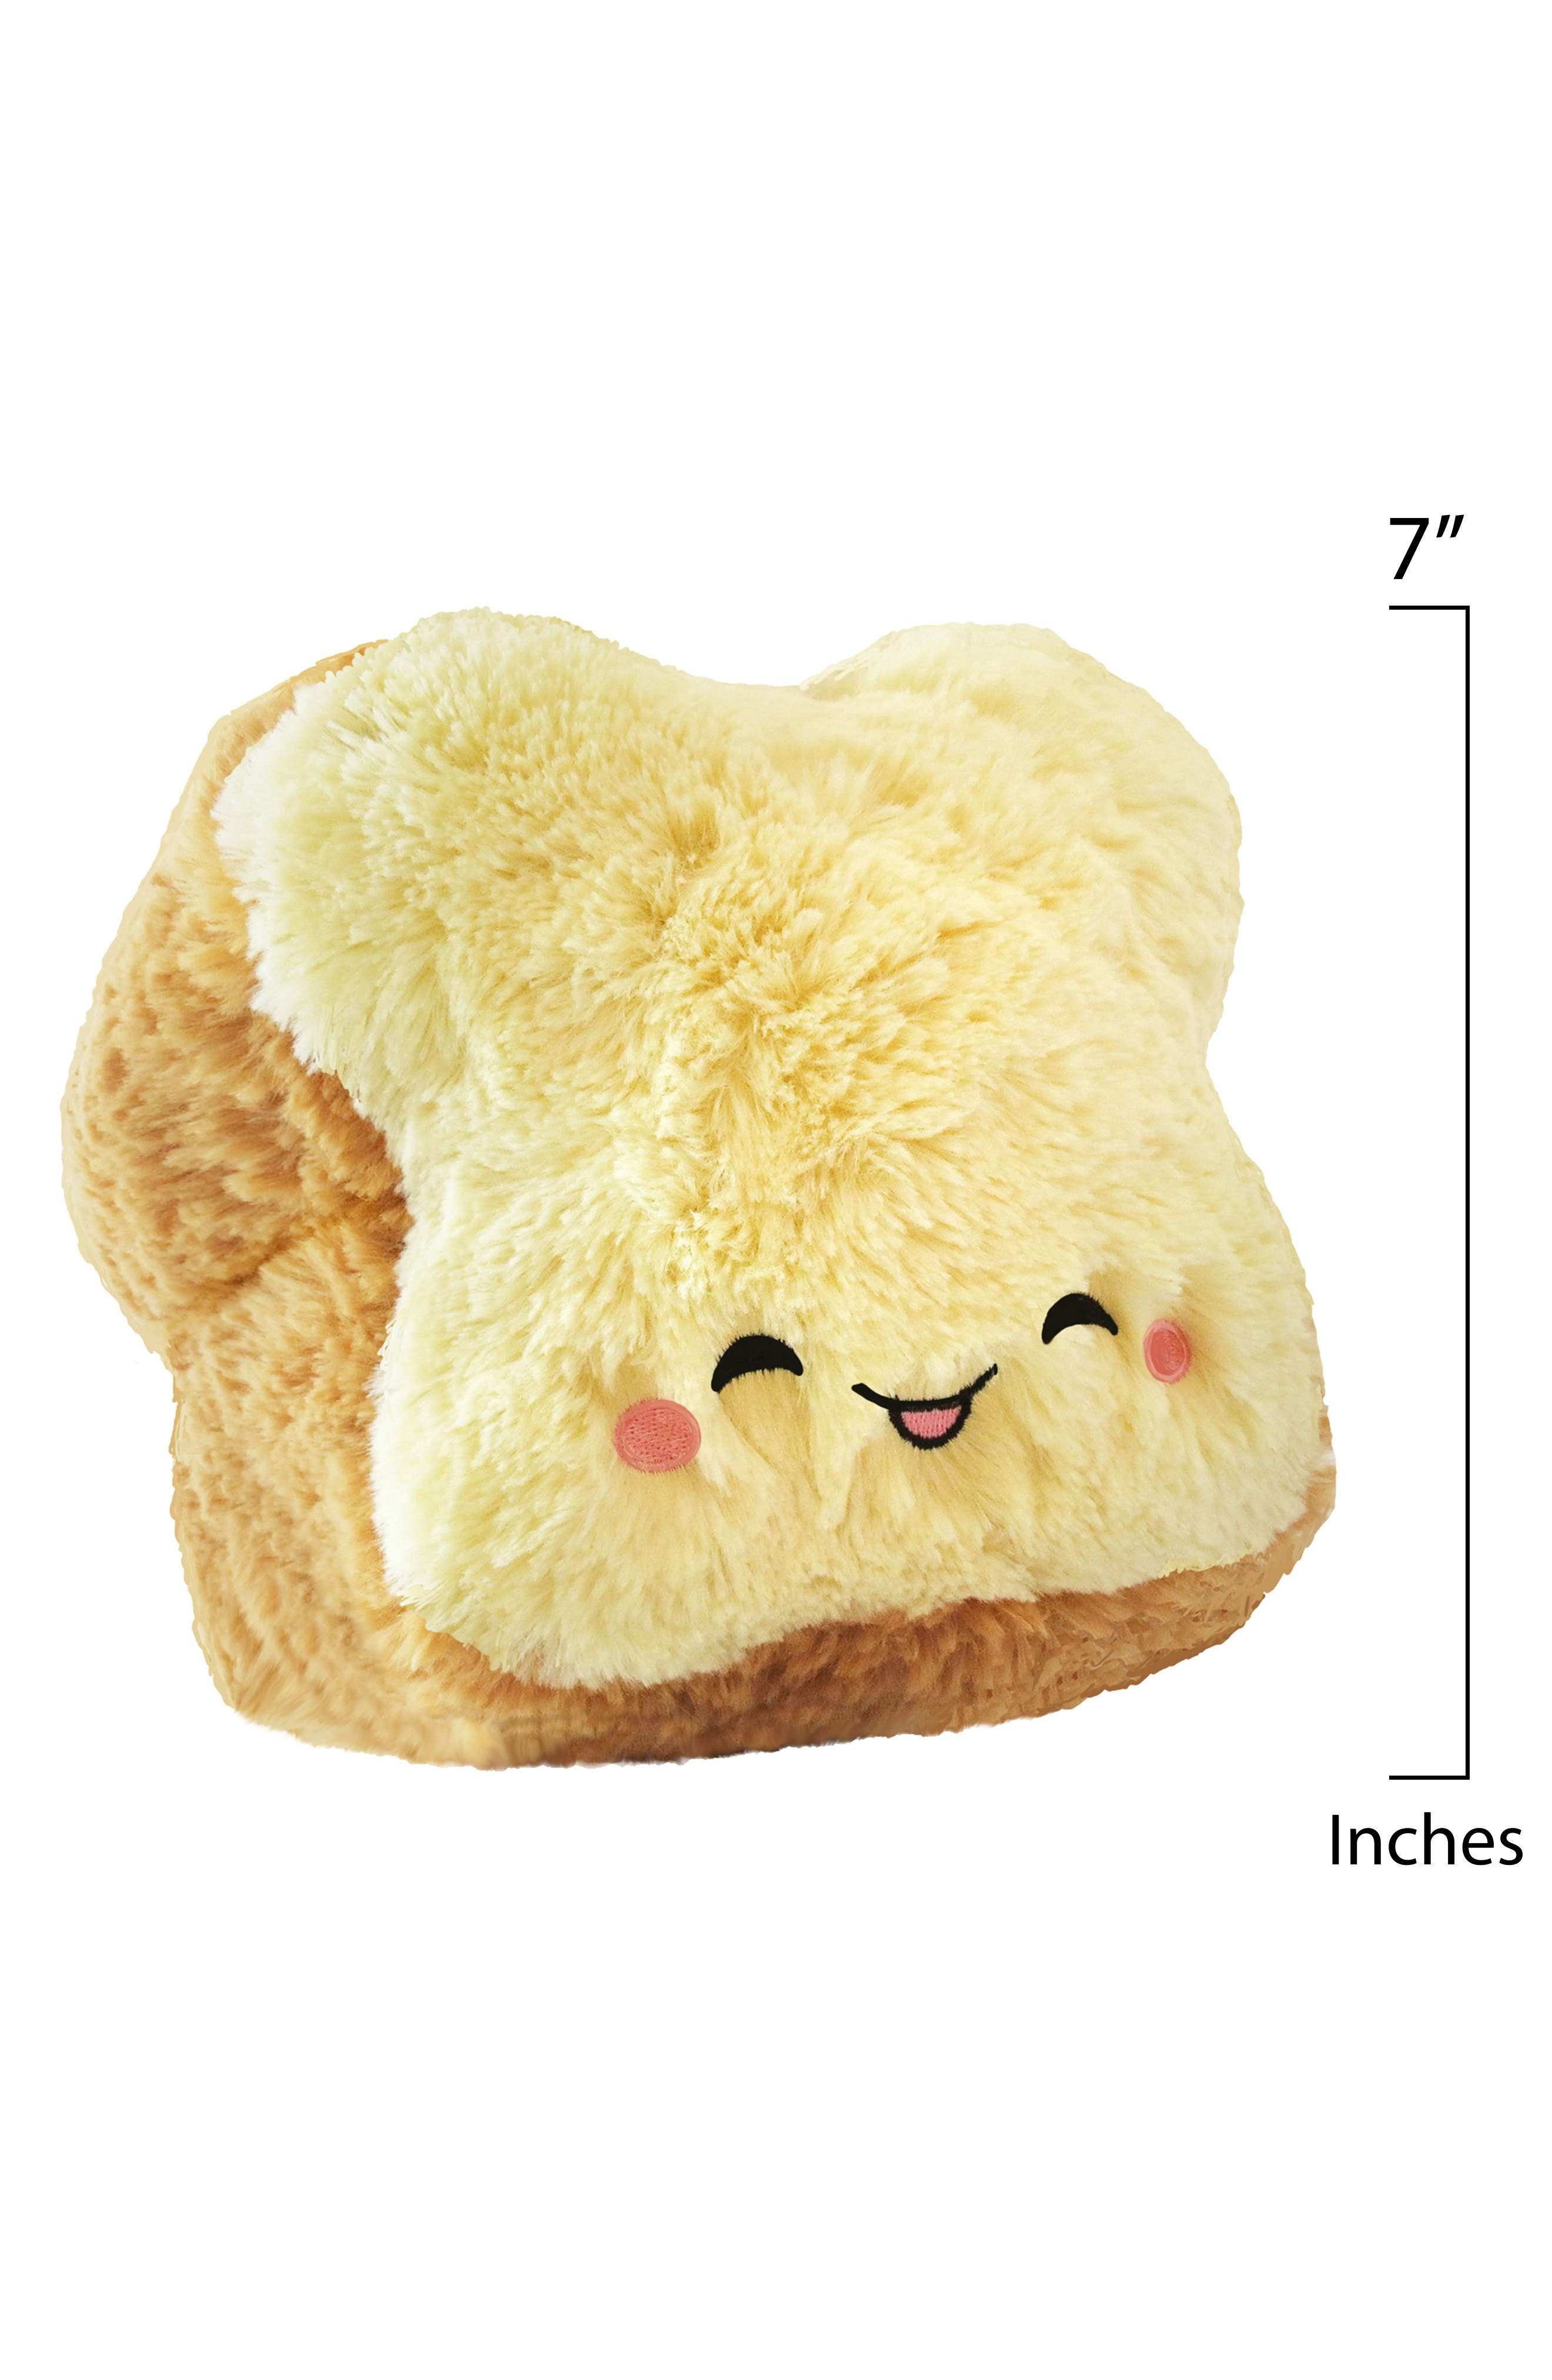 Alternate Image 2  - Squishable Mini Loaf of Bread Stuffed Toy